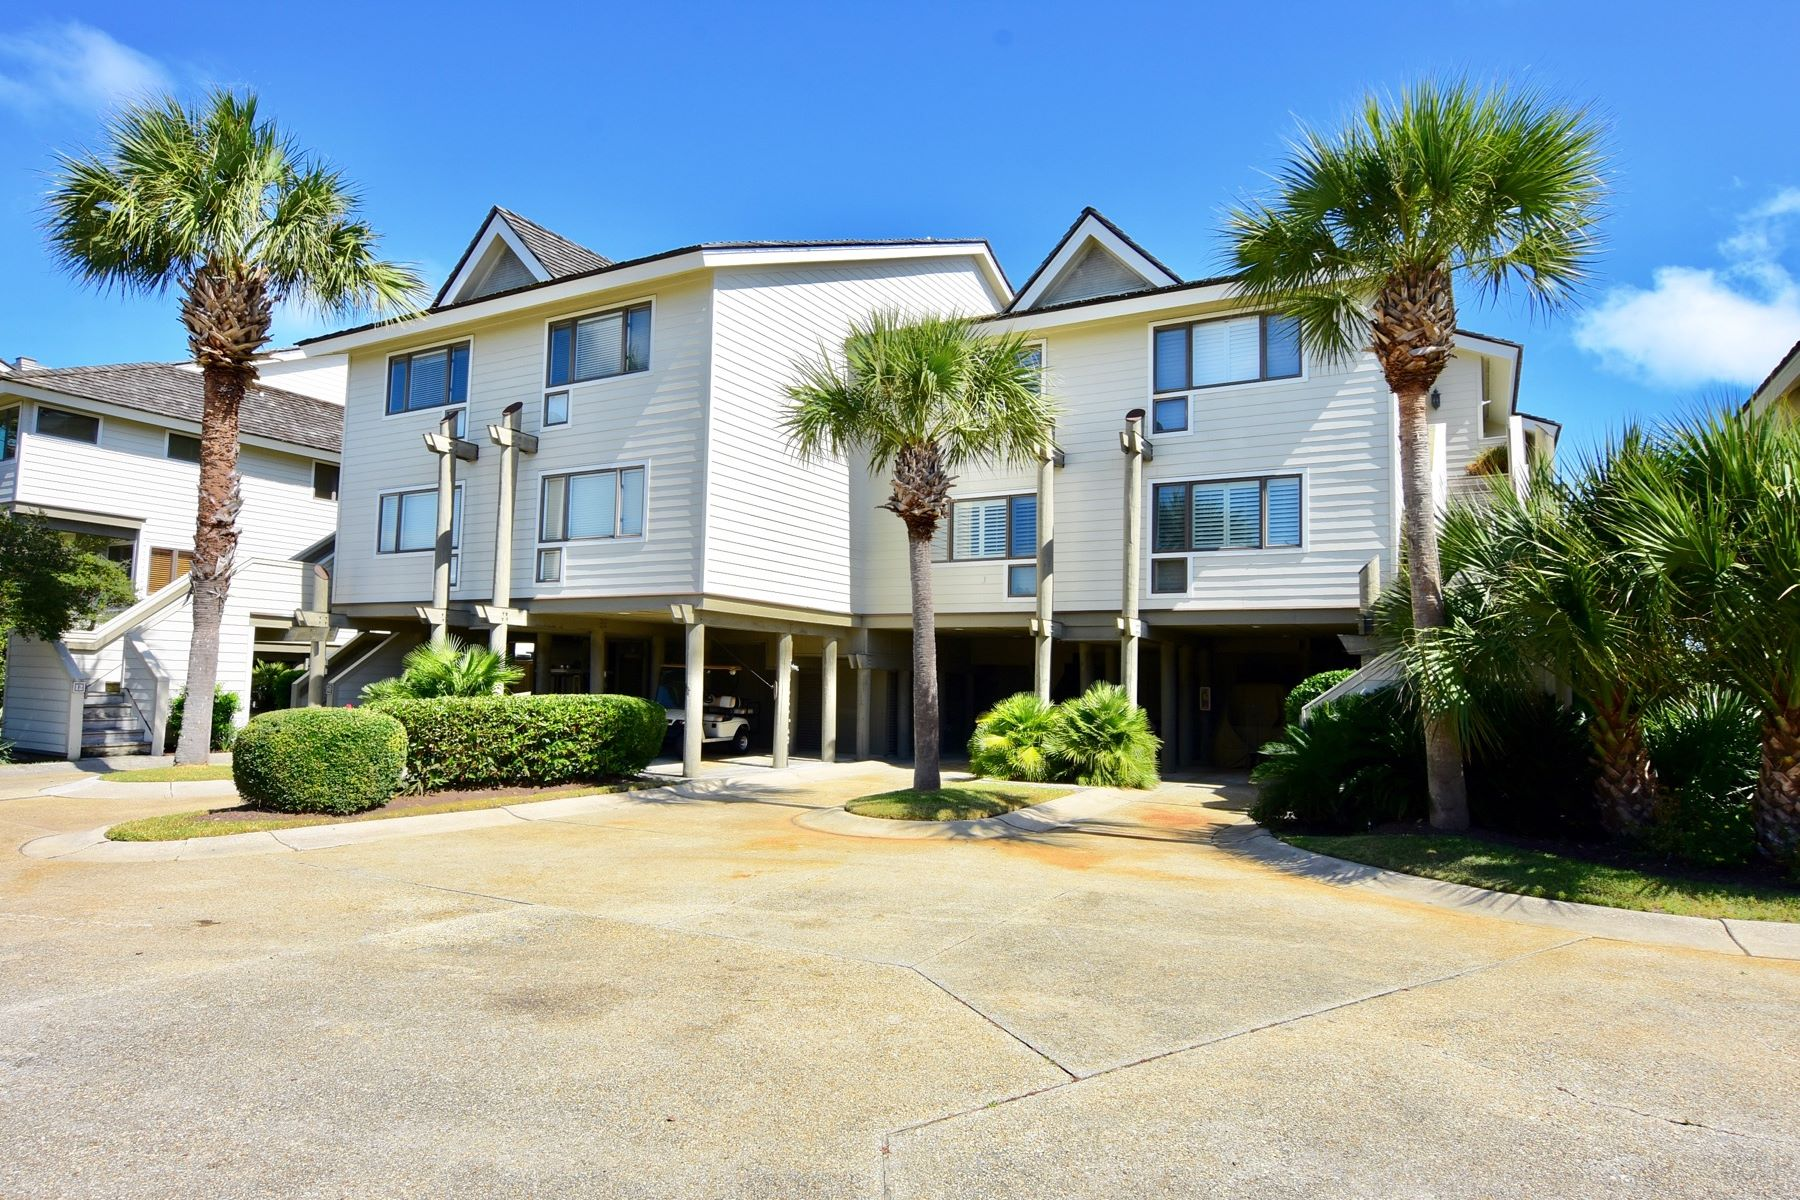 Townhouse for Sale at 1093 Debordieu Blvd, Georgetown, SC 29440 1093 Debordieu Blvd 13 Georgetown, South Carolina 29440 United States